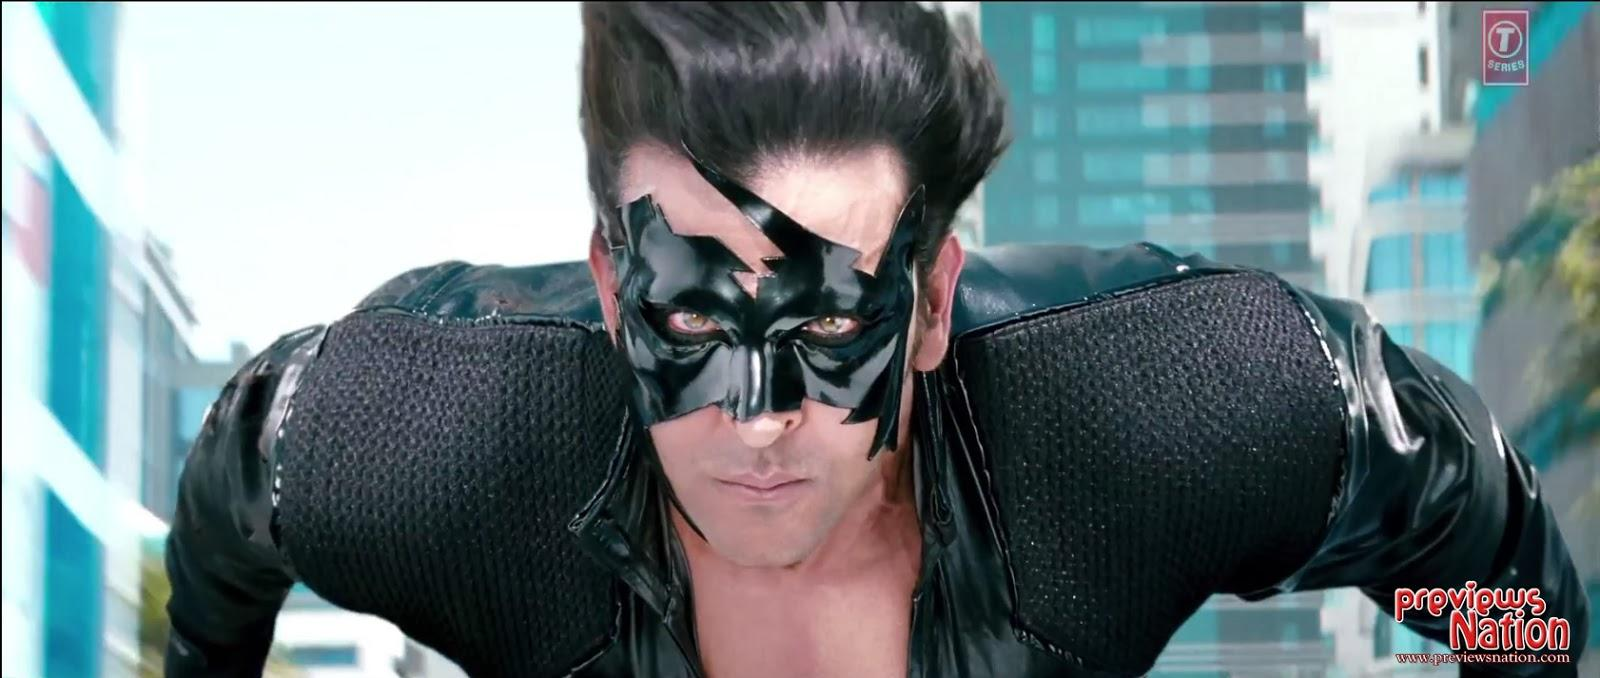 Hrithik Roshan: krrish 3 first look wallpapers